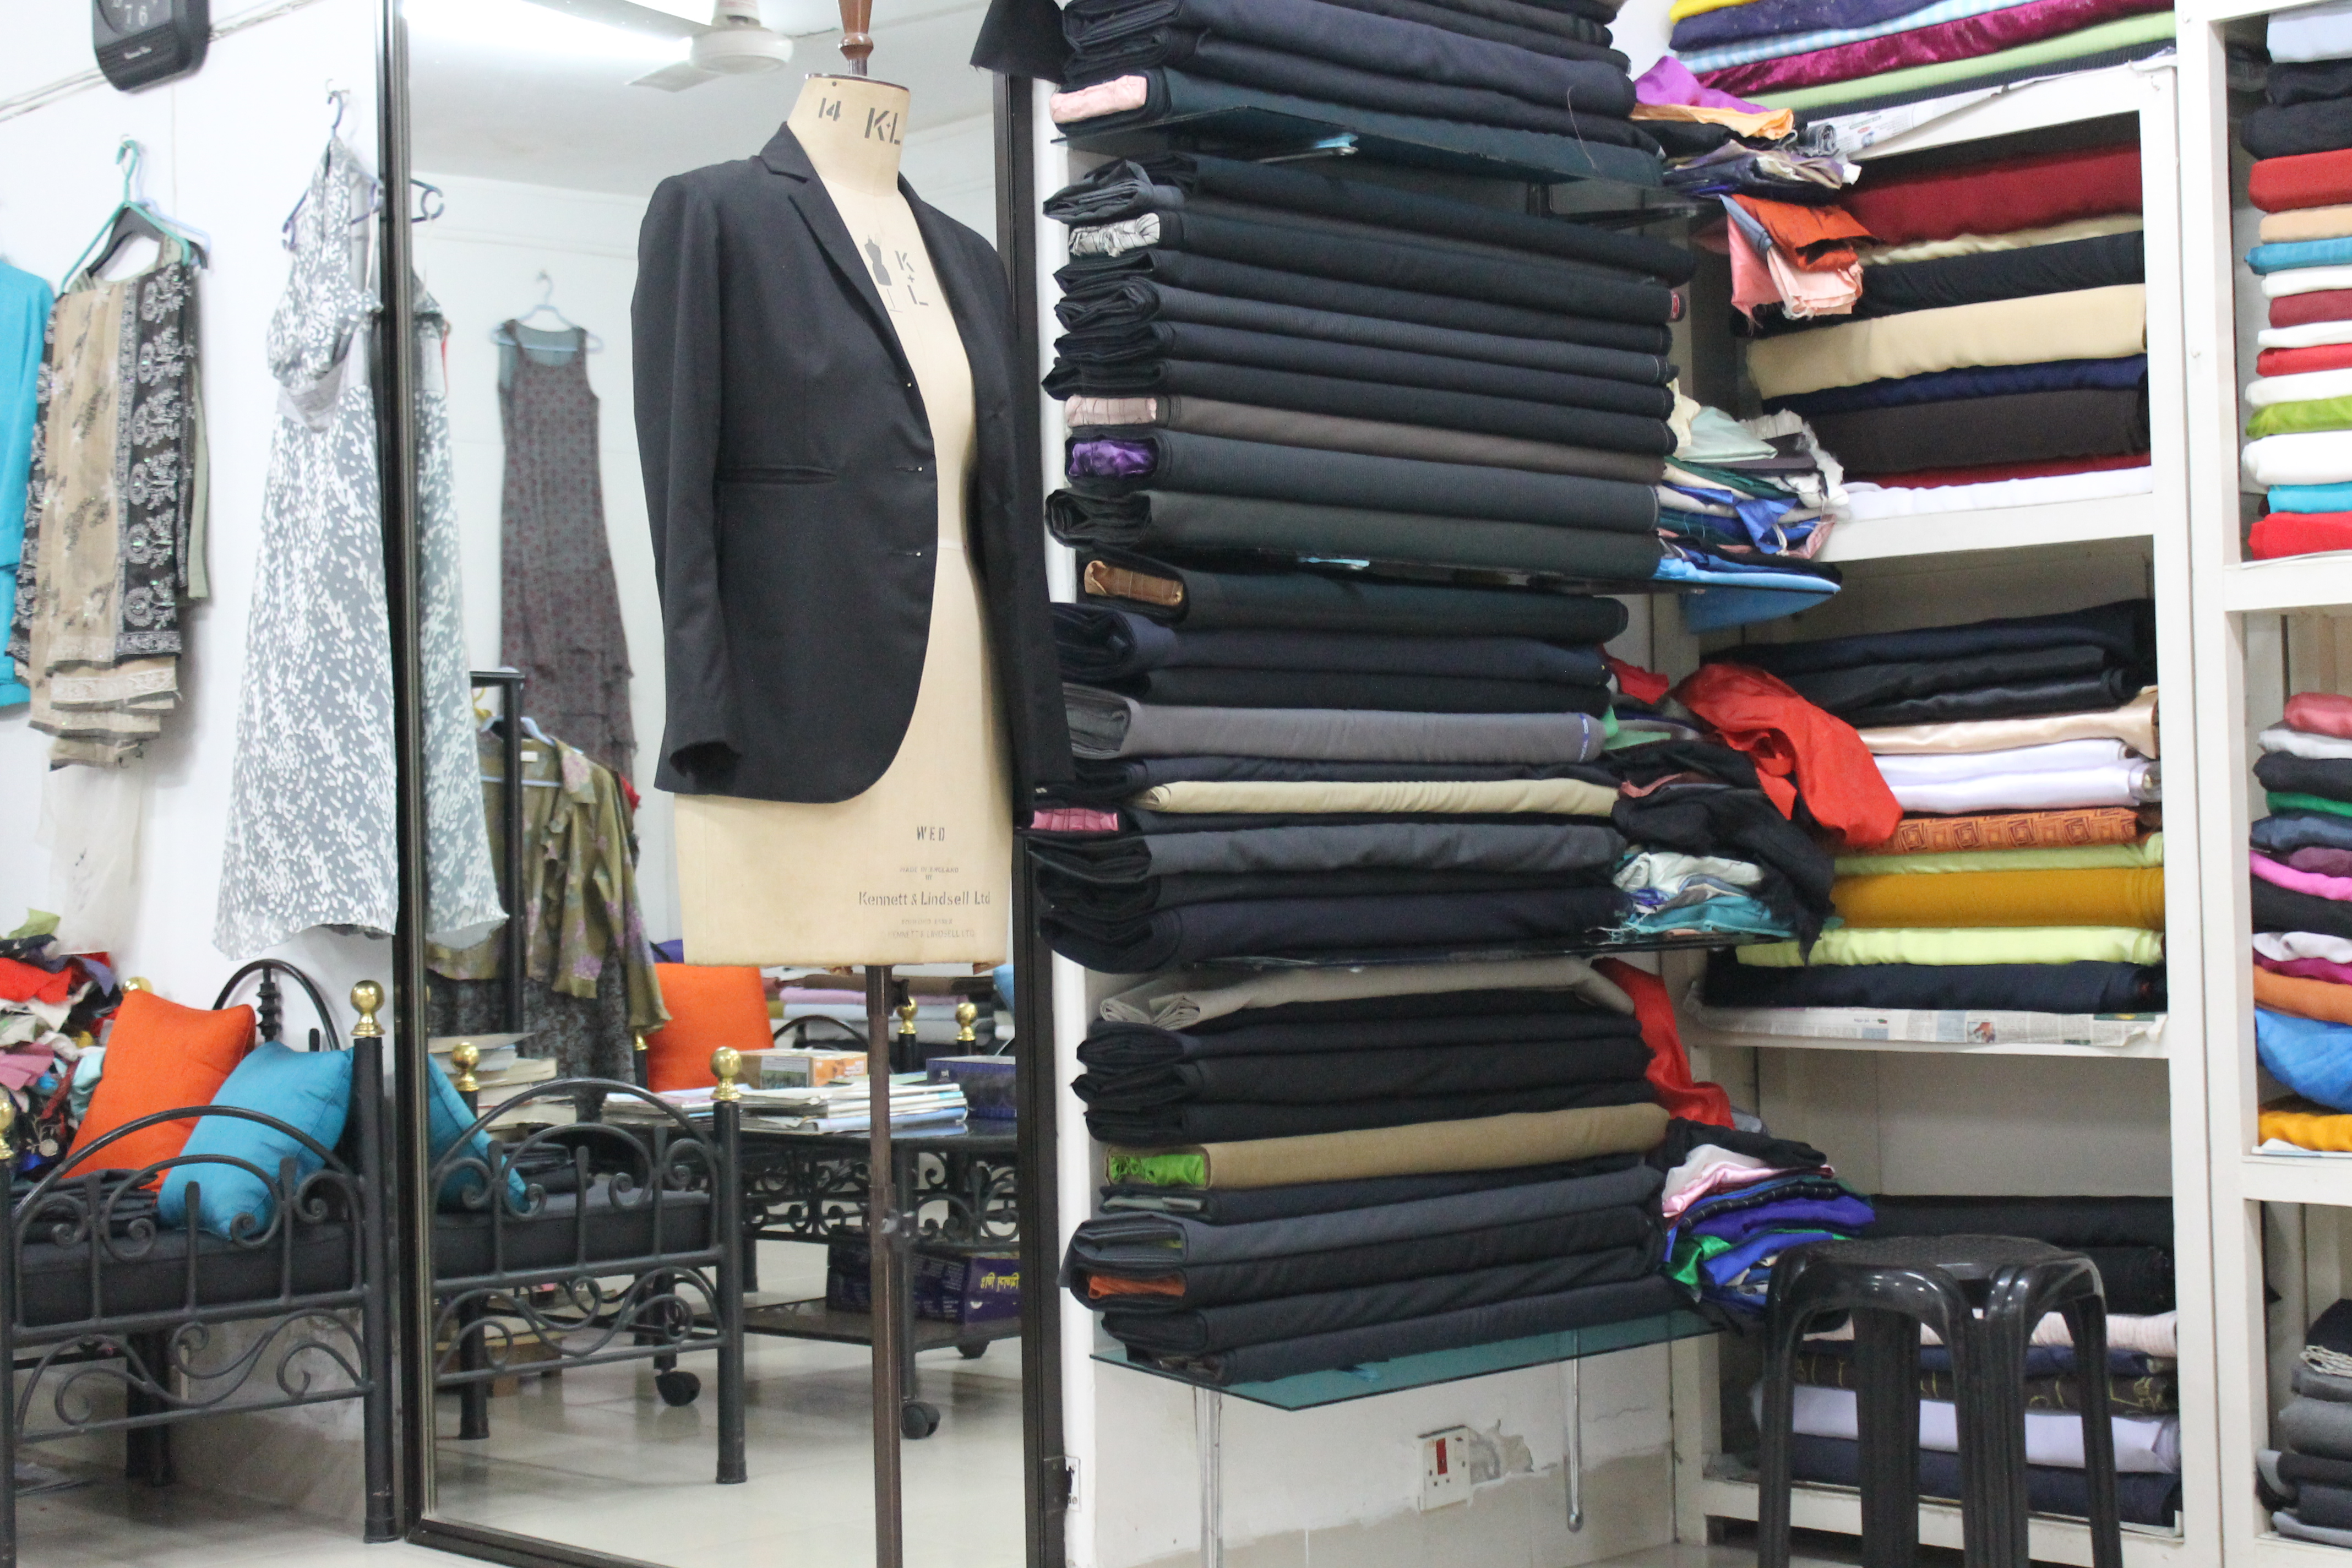 Most tailors sell cloth as well.